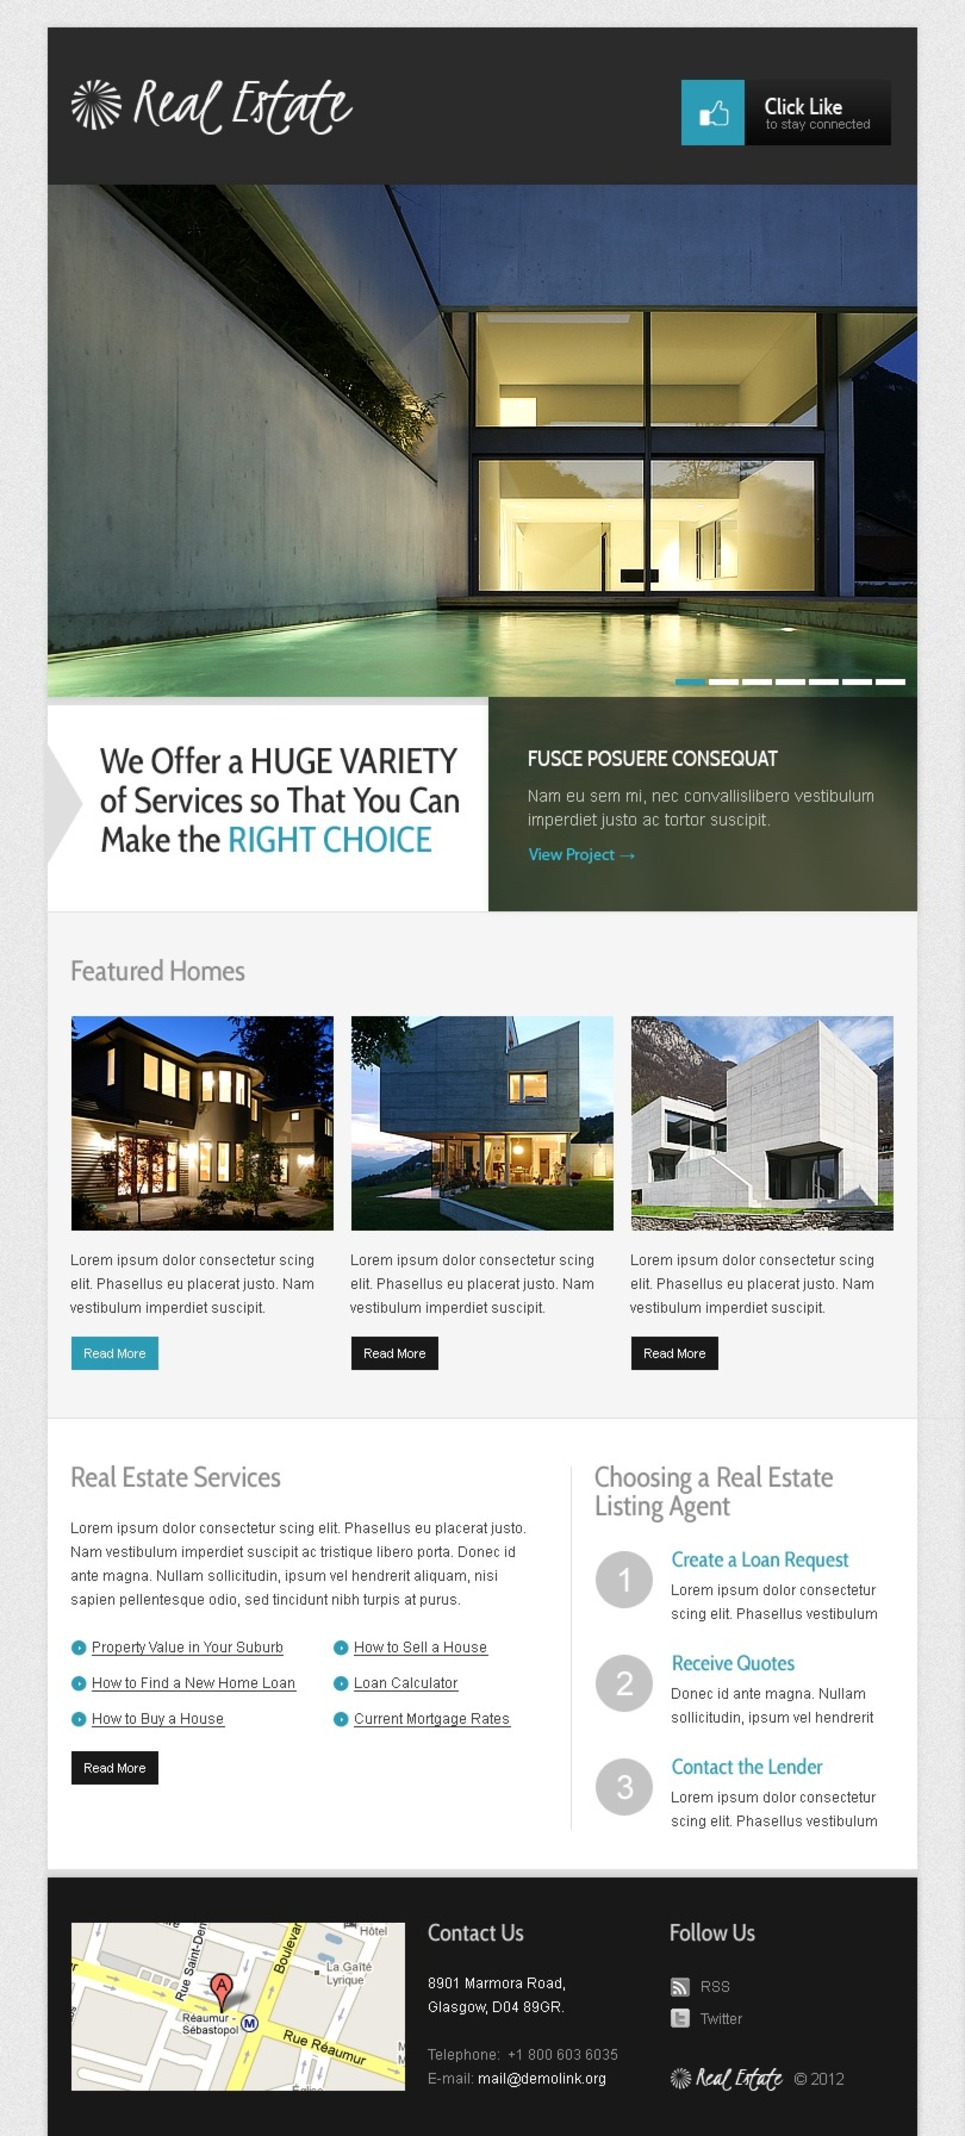 Real Estate Agency Facebook Template New Screenshots BIG